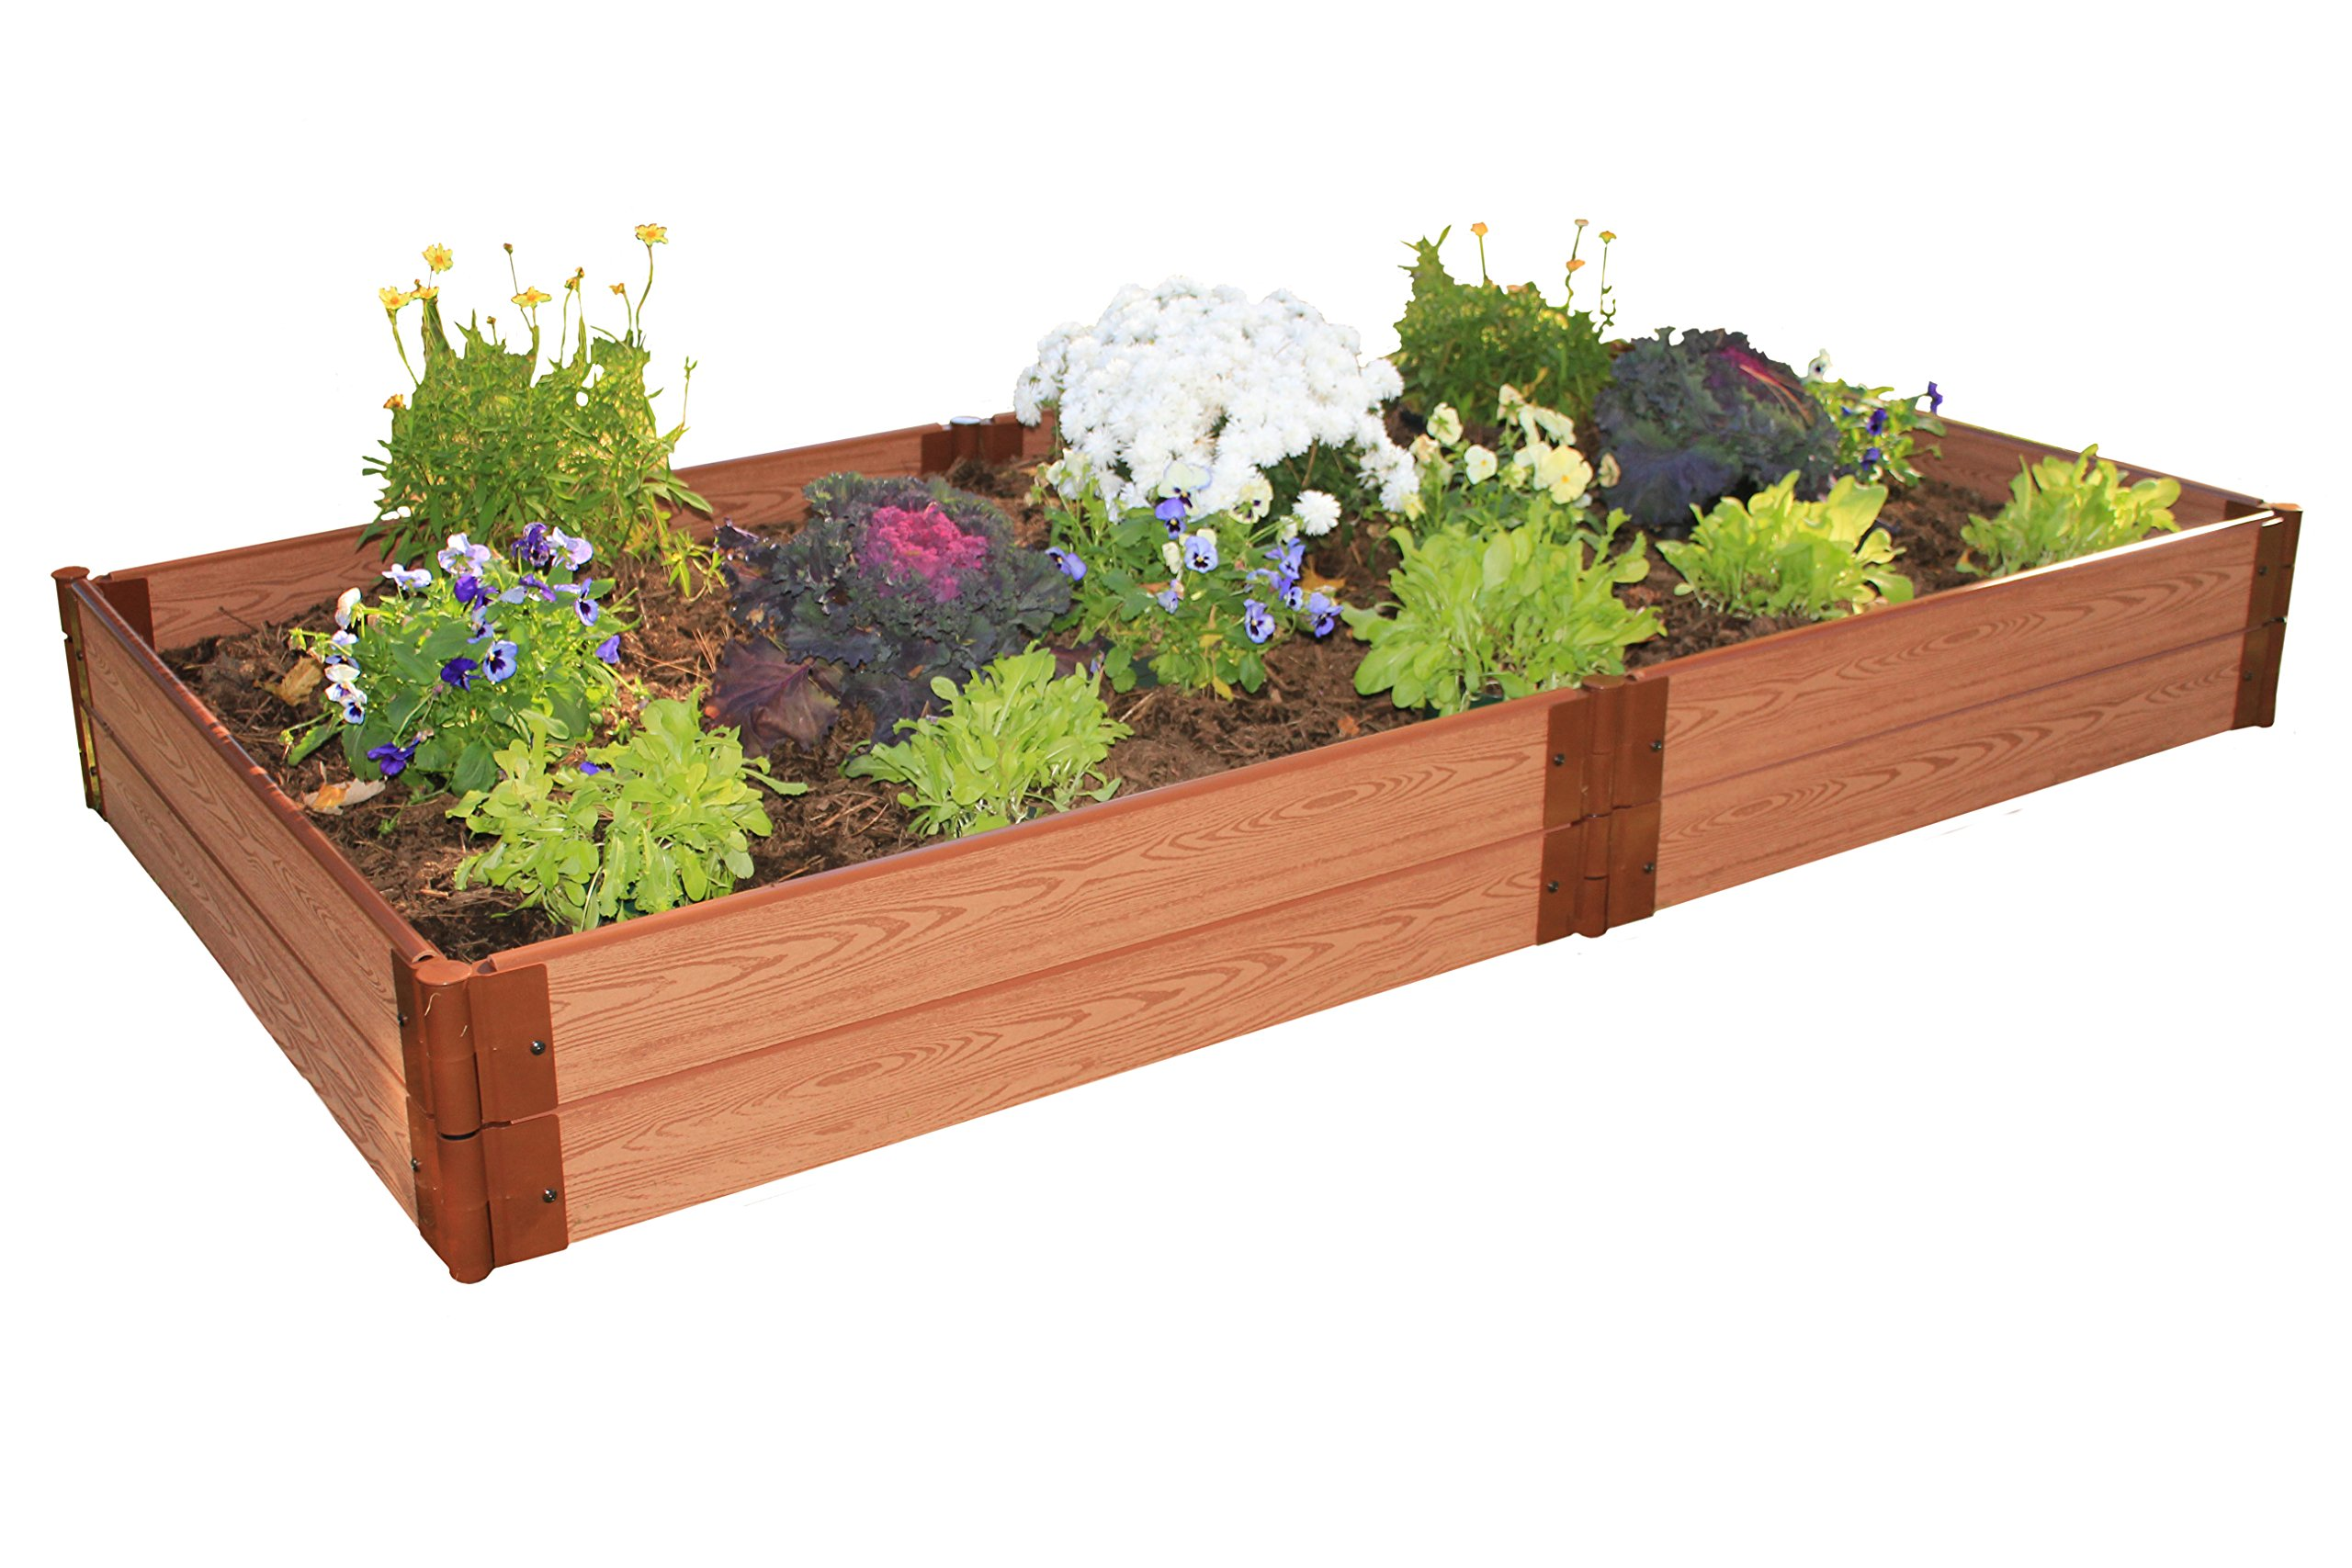 One Inch Series 4ft. x  8ft. x 11in. Composite Raised Garden Bed Kit